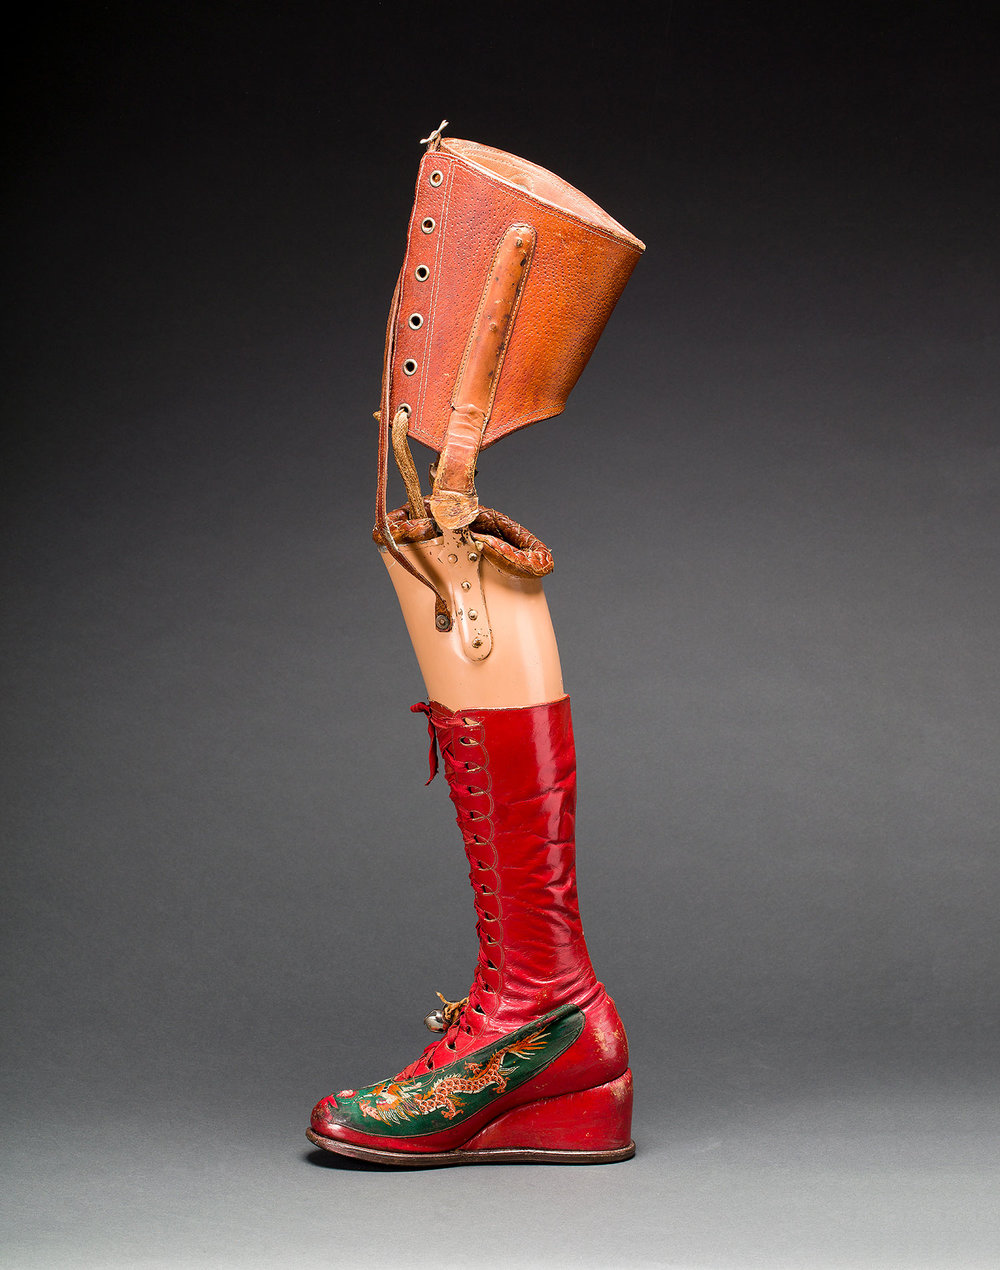 Image credit: Prosthetic leg with leather boot. Appliquéd silk with embroidered Chinese motifs. Photograph Javier Hinojosa. © Diego Riviera and Frida Kahlo Archives, Banco de México, Fiduciary of the Trust of the Diego Riviera and Frida Kahlo Museum